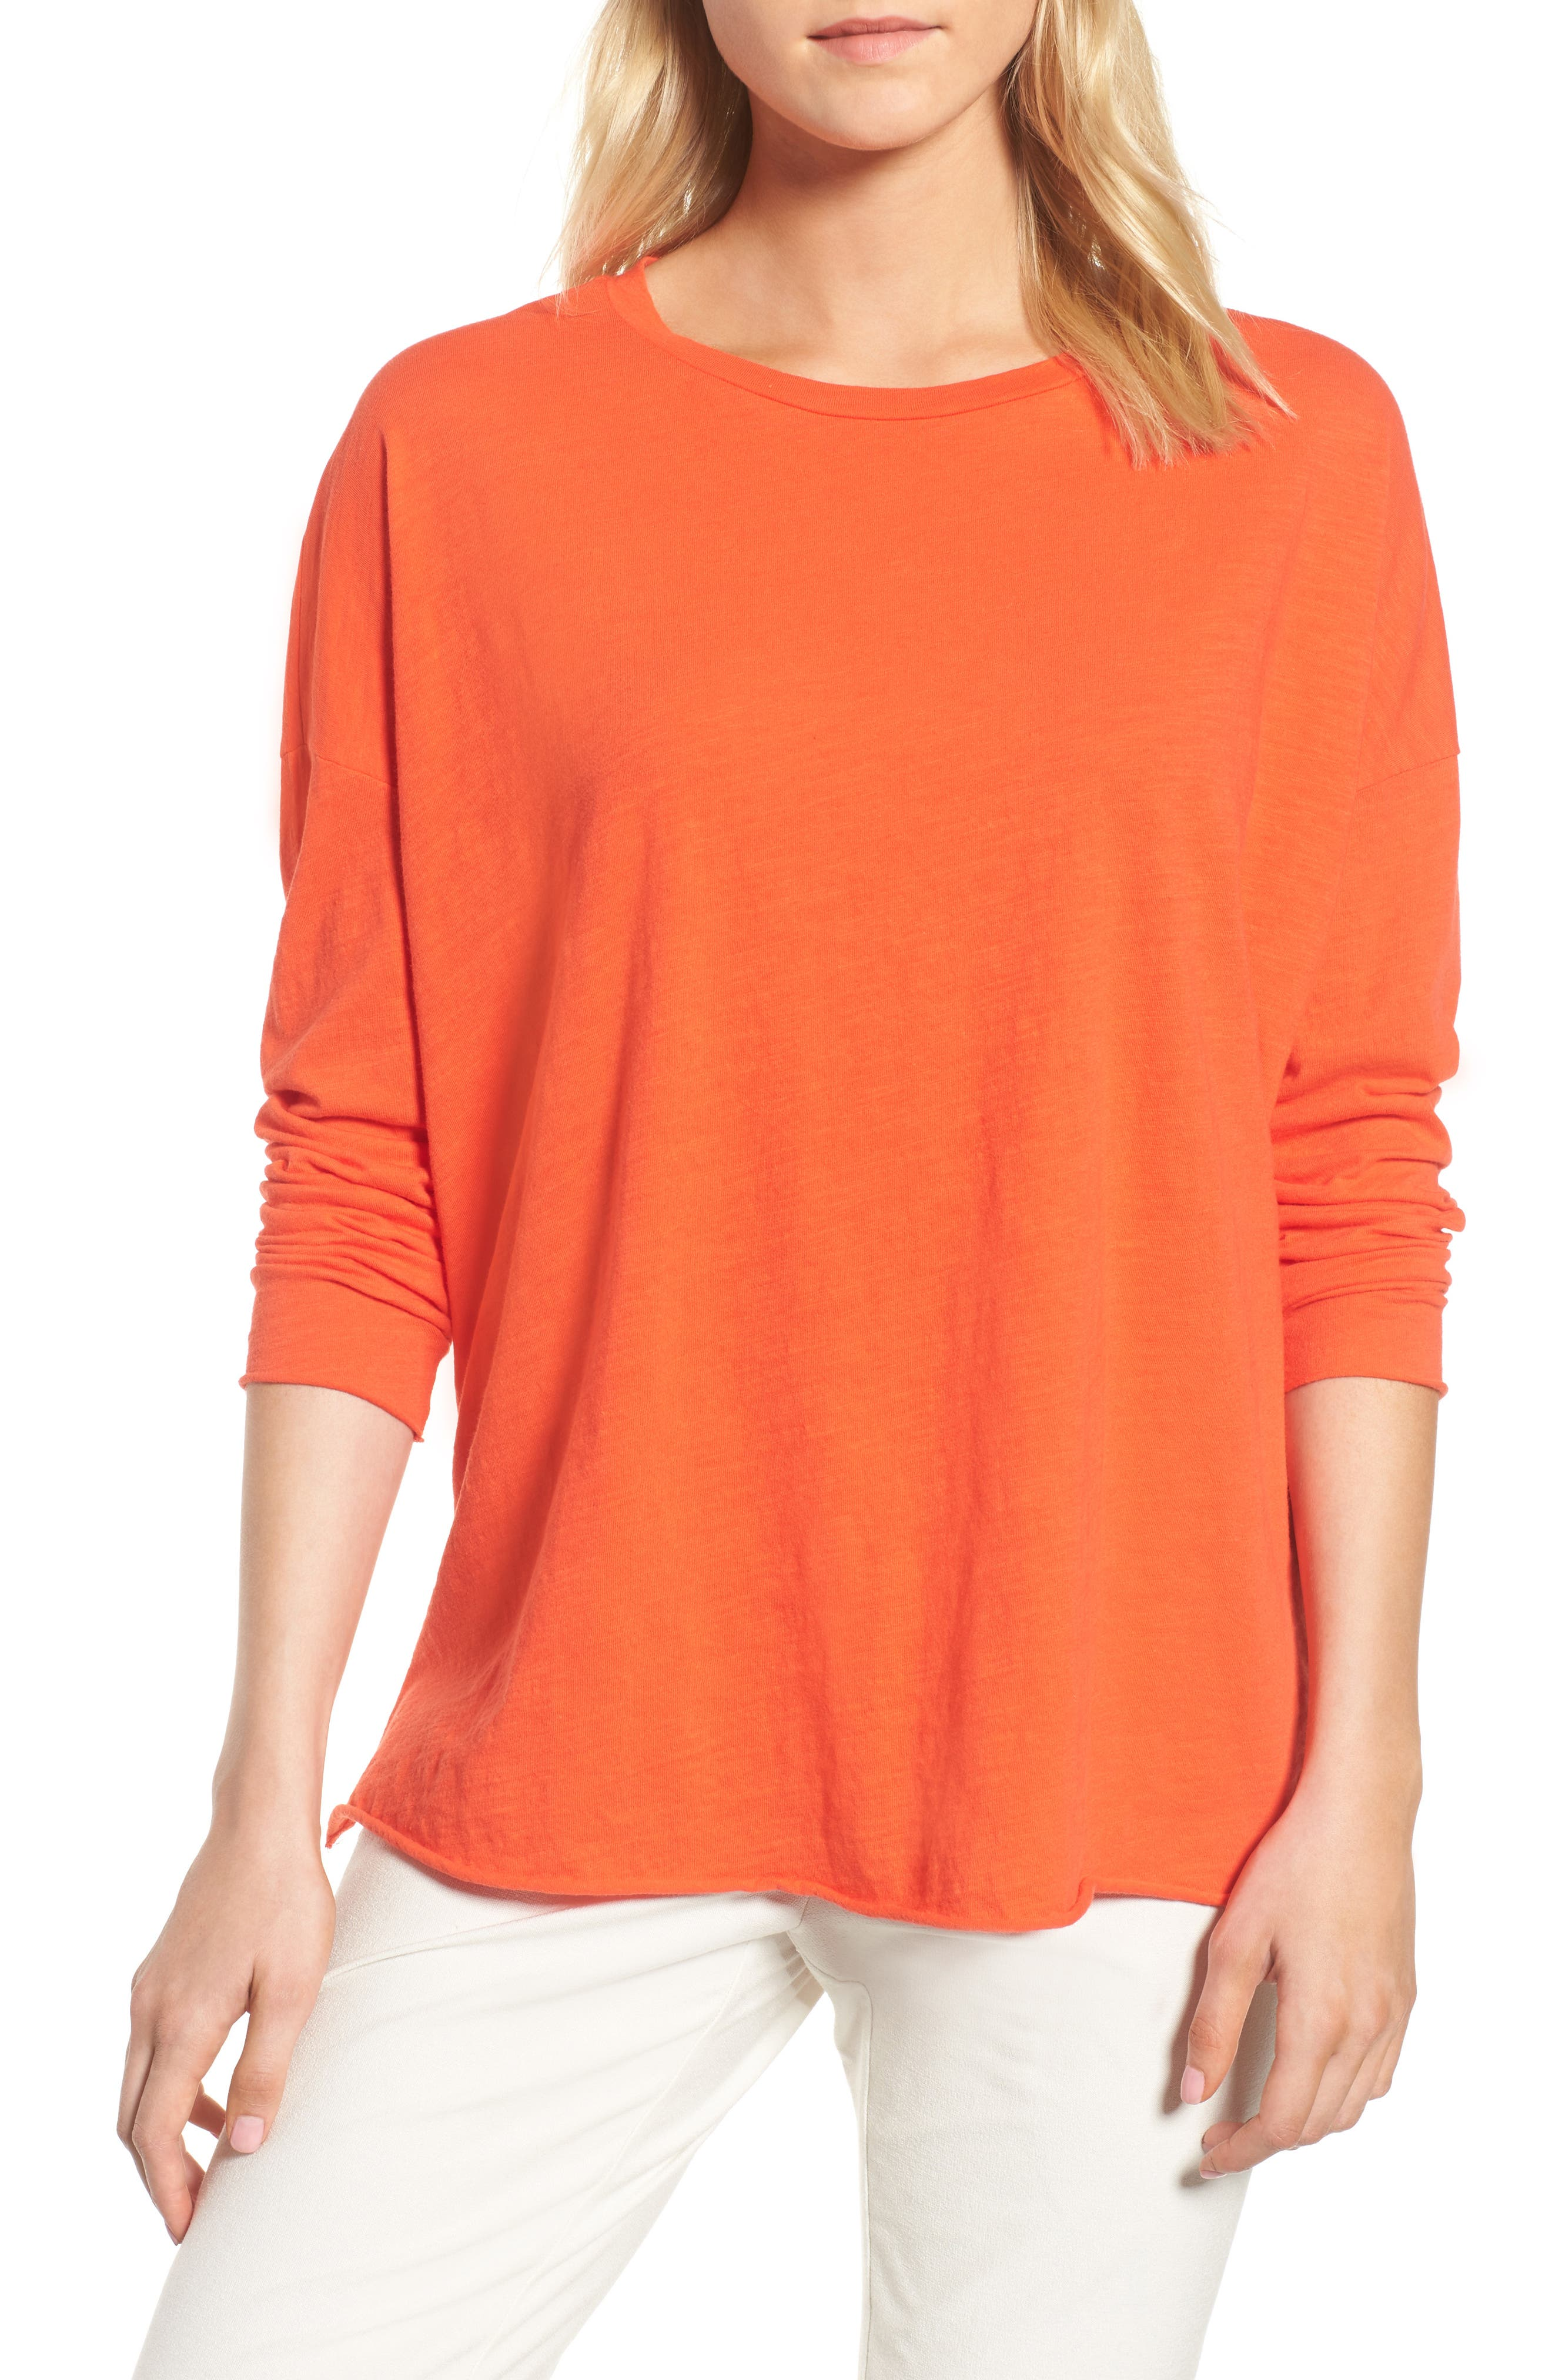 Eileen Fisher Organic Cotton Knit Top